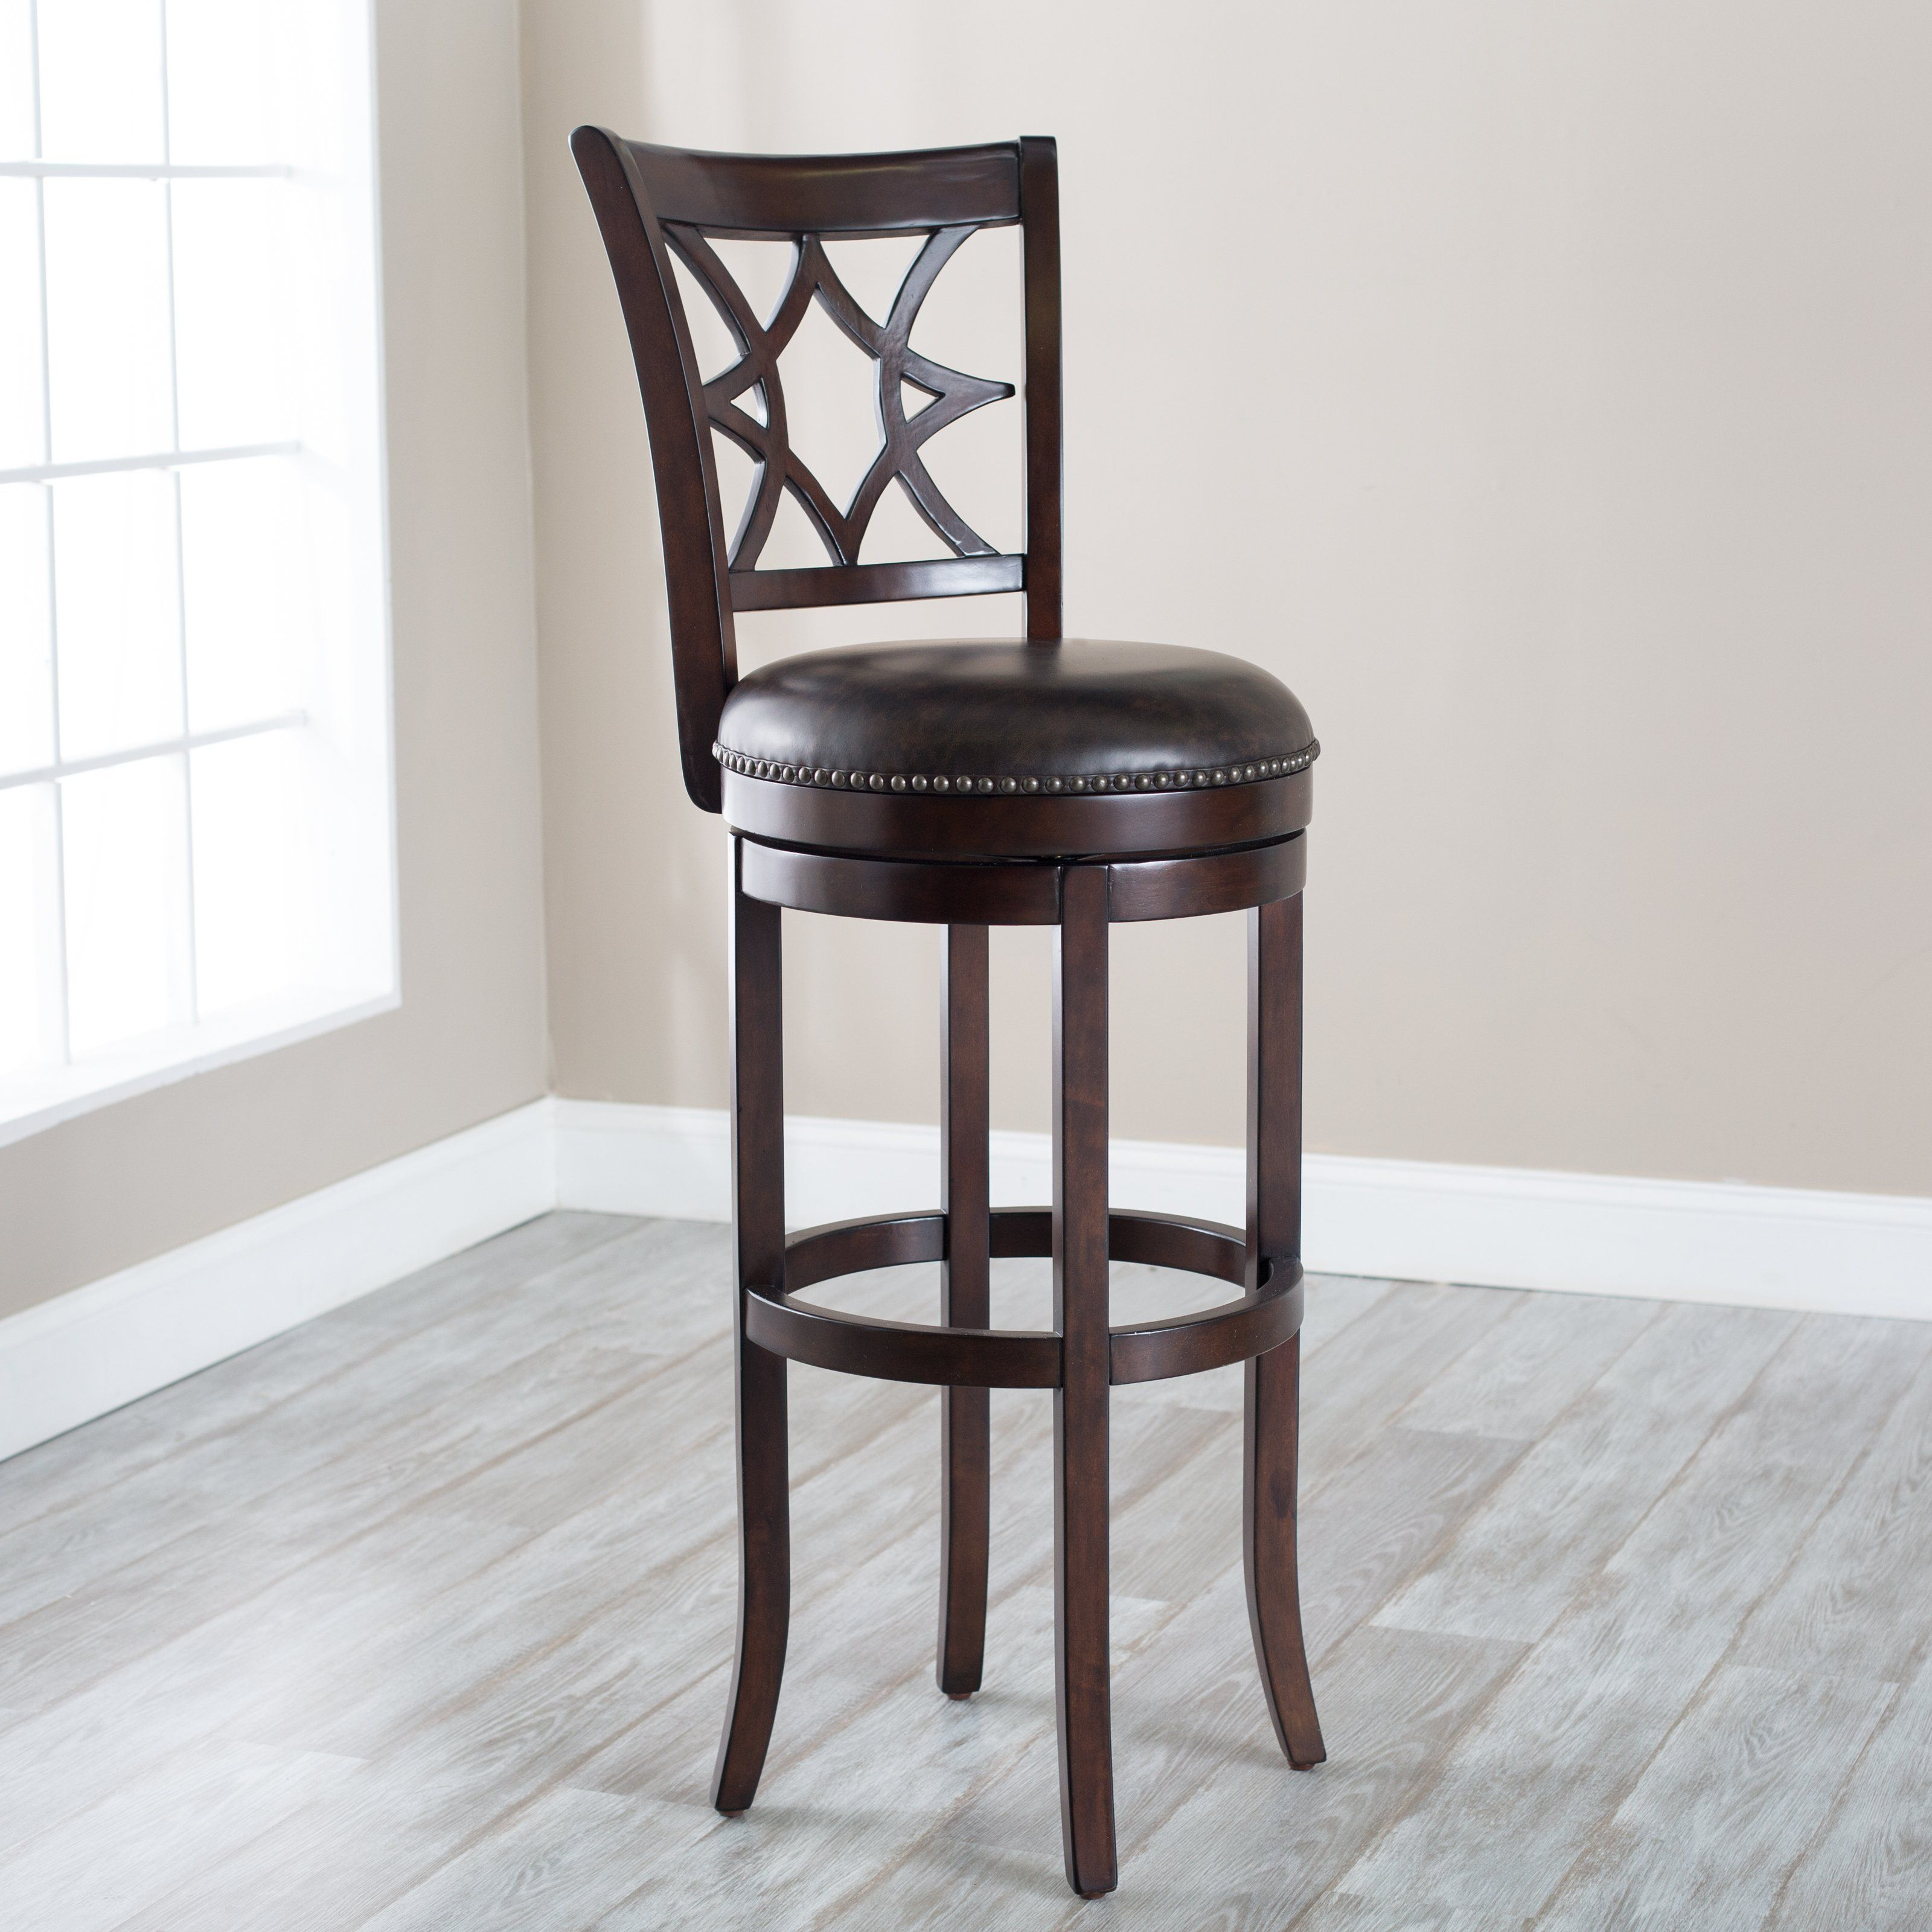 Fine Furniture Rounded Black Leather Upholstered Bar Stool With Machost Co Dining Chair Design Ideas Machostcouk